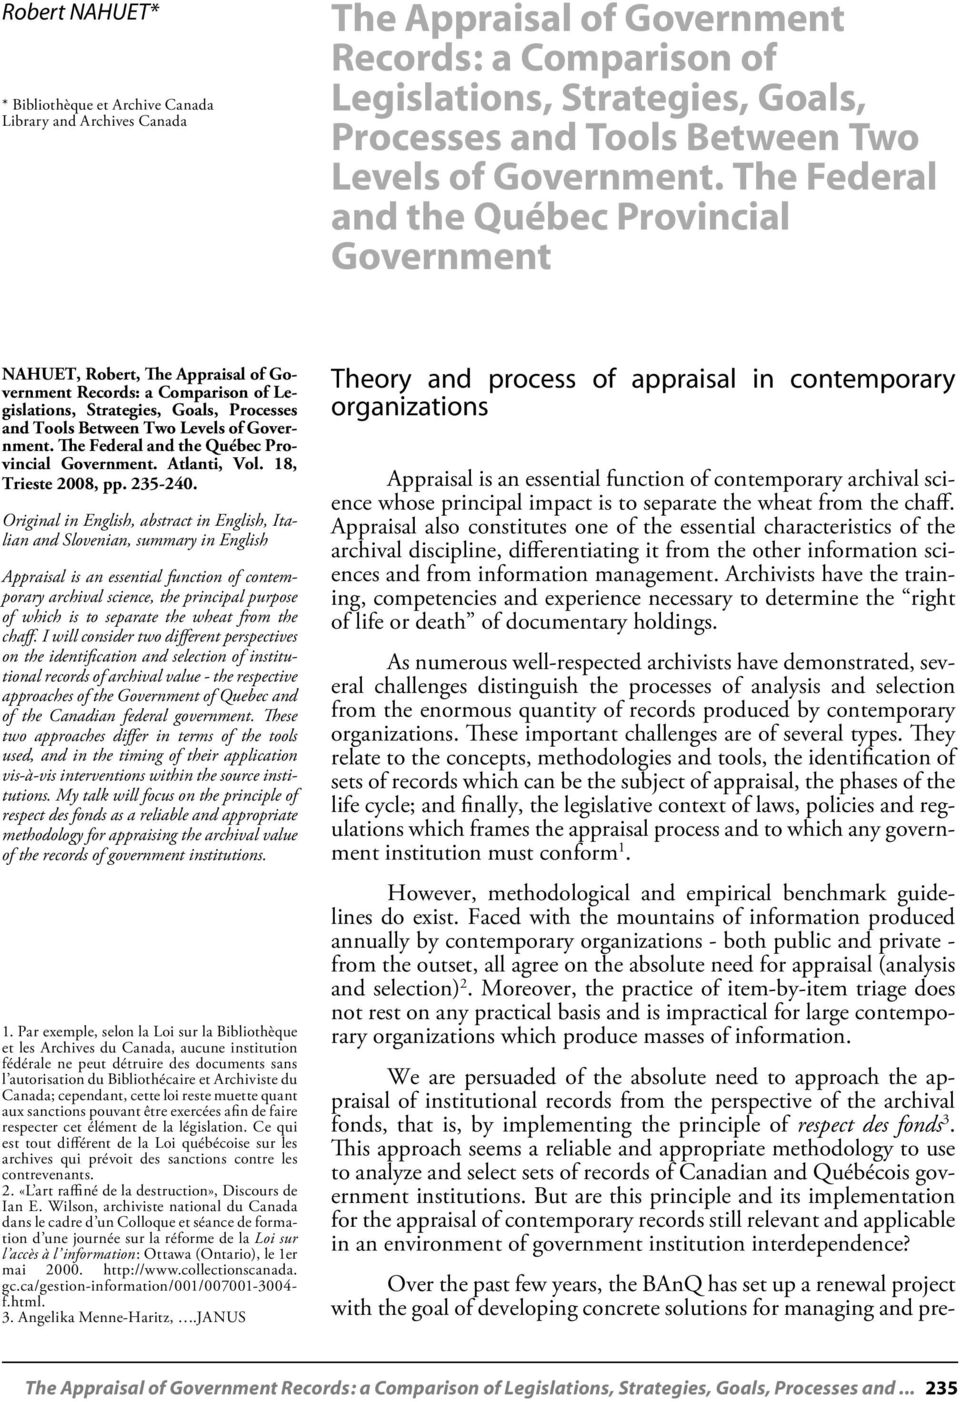 The Federal and the Québec Provincial Government NAHUET, Robert, The Appraisal of Government Records: a Comparison of Legislations, Strategies, Goals, Processes and Tools Between Two  The Federal and